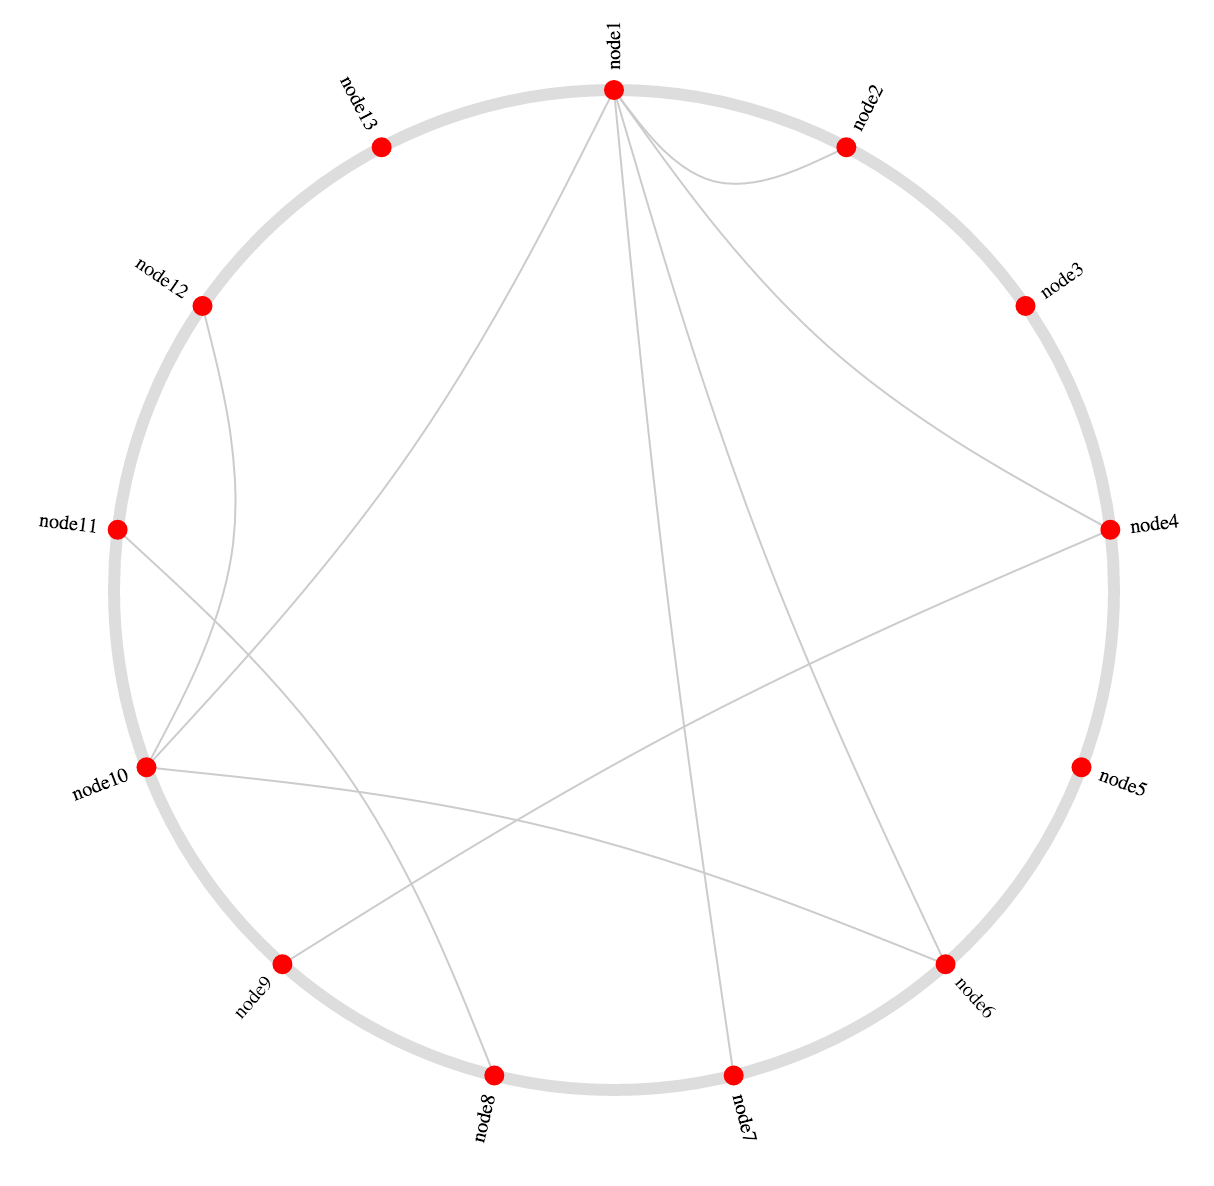 D3 layout circle graph cdn by jsdelivr a cdn for npm and github demog 28 ccuart Choice Image